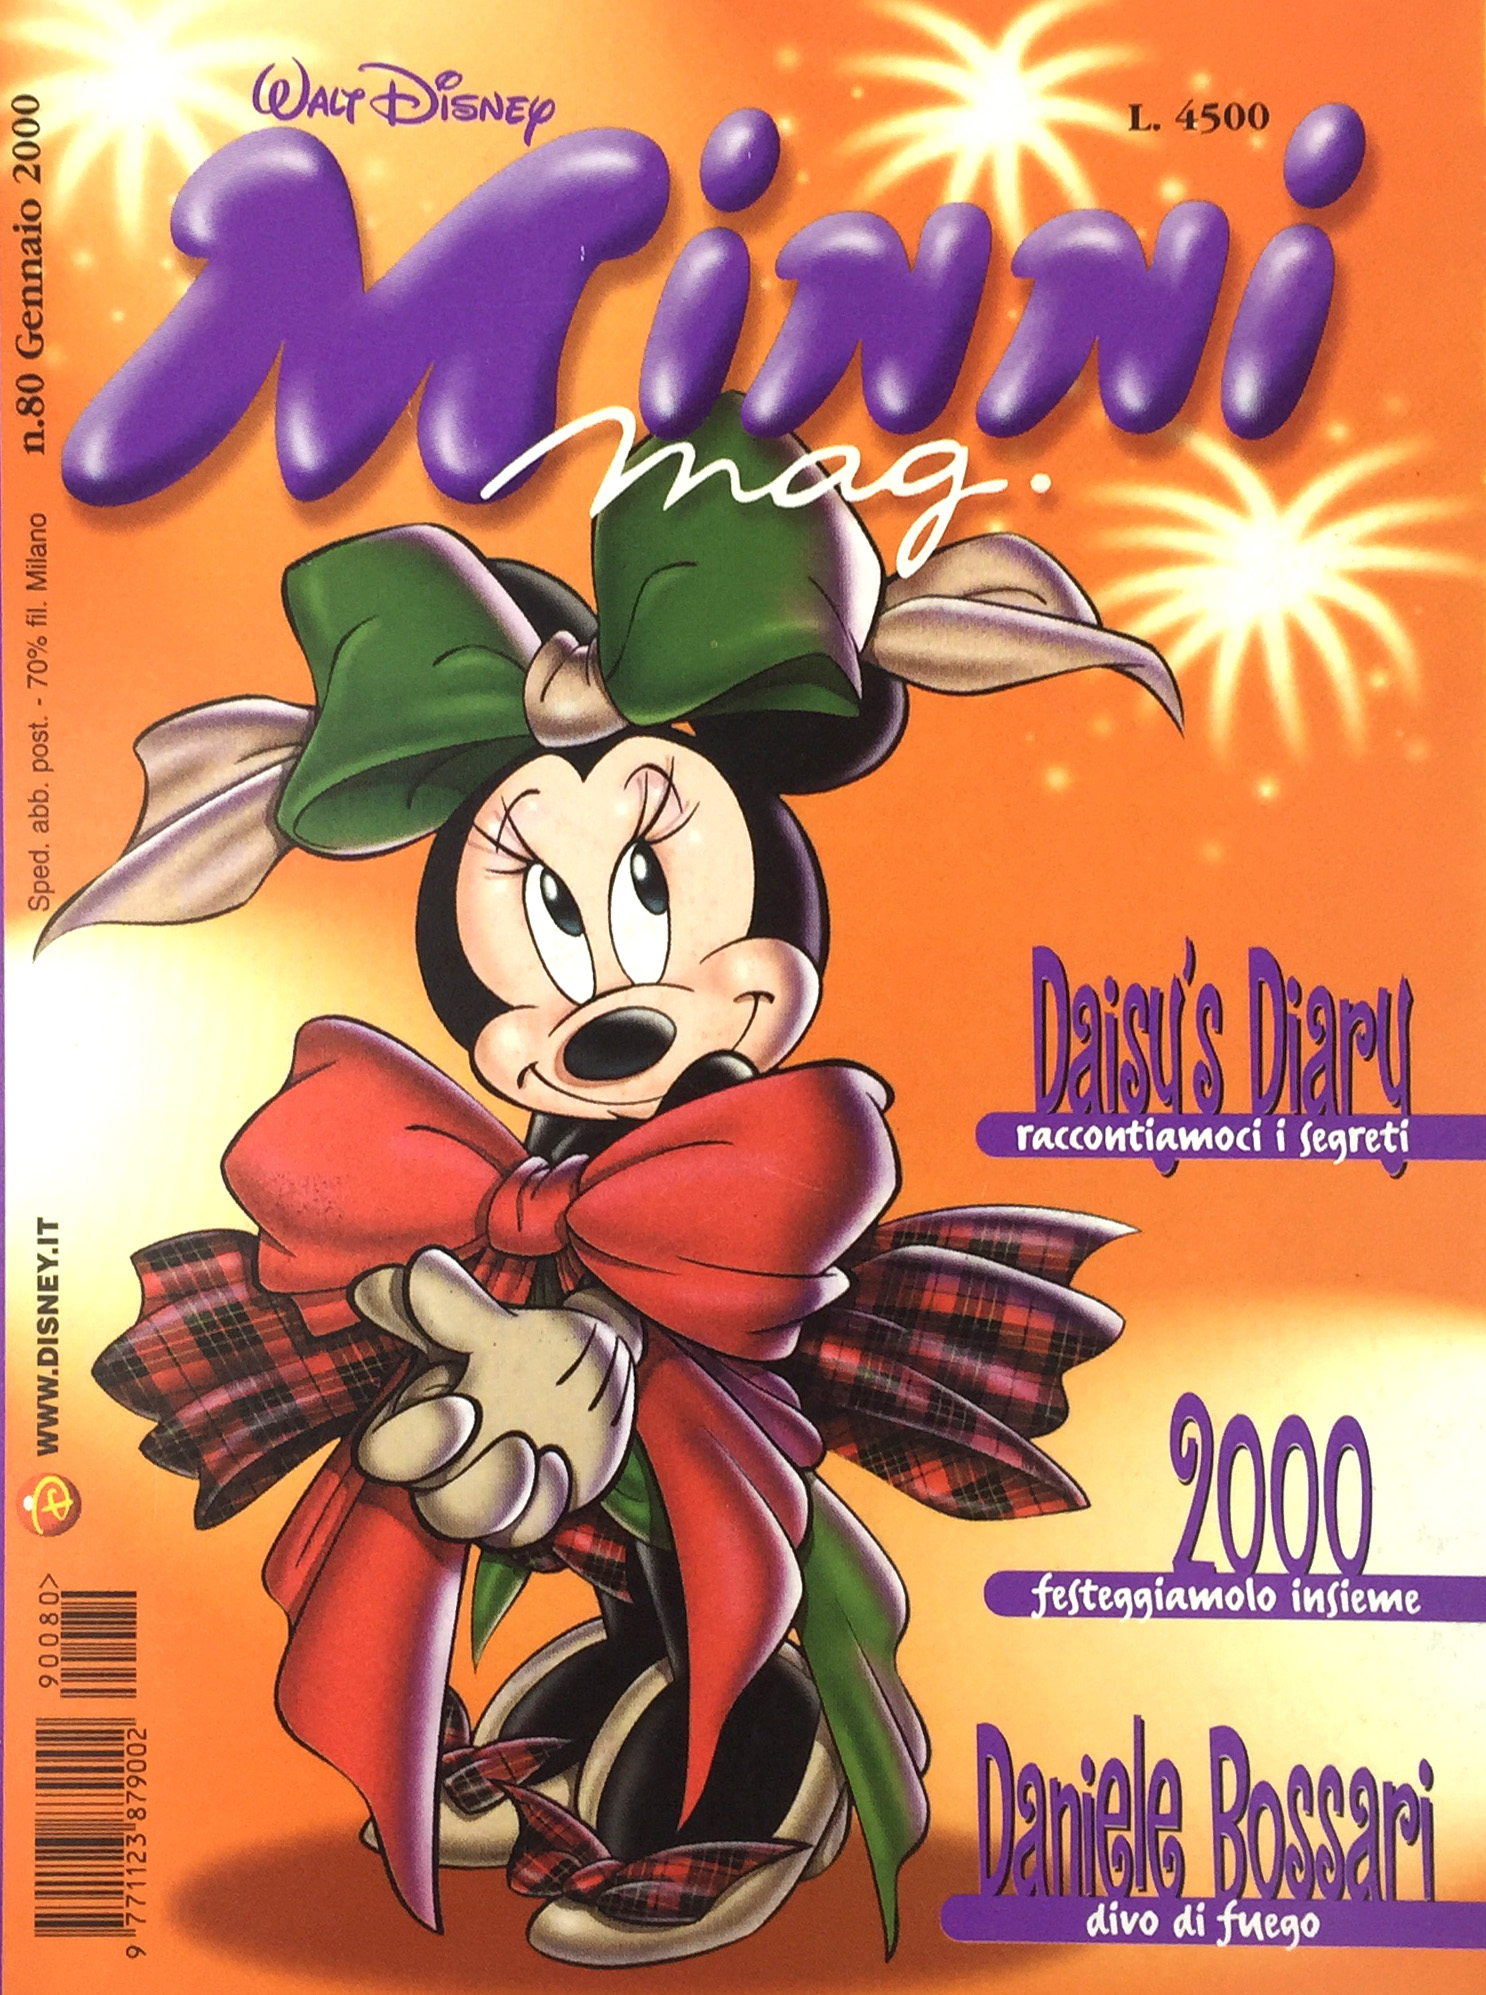 Minni MAG covers